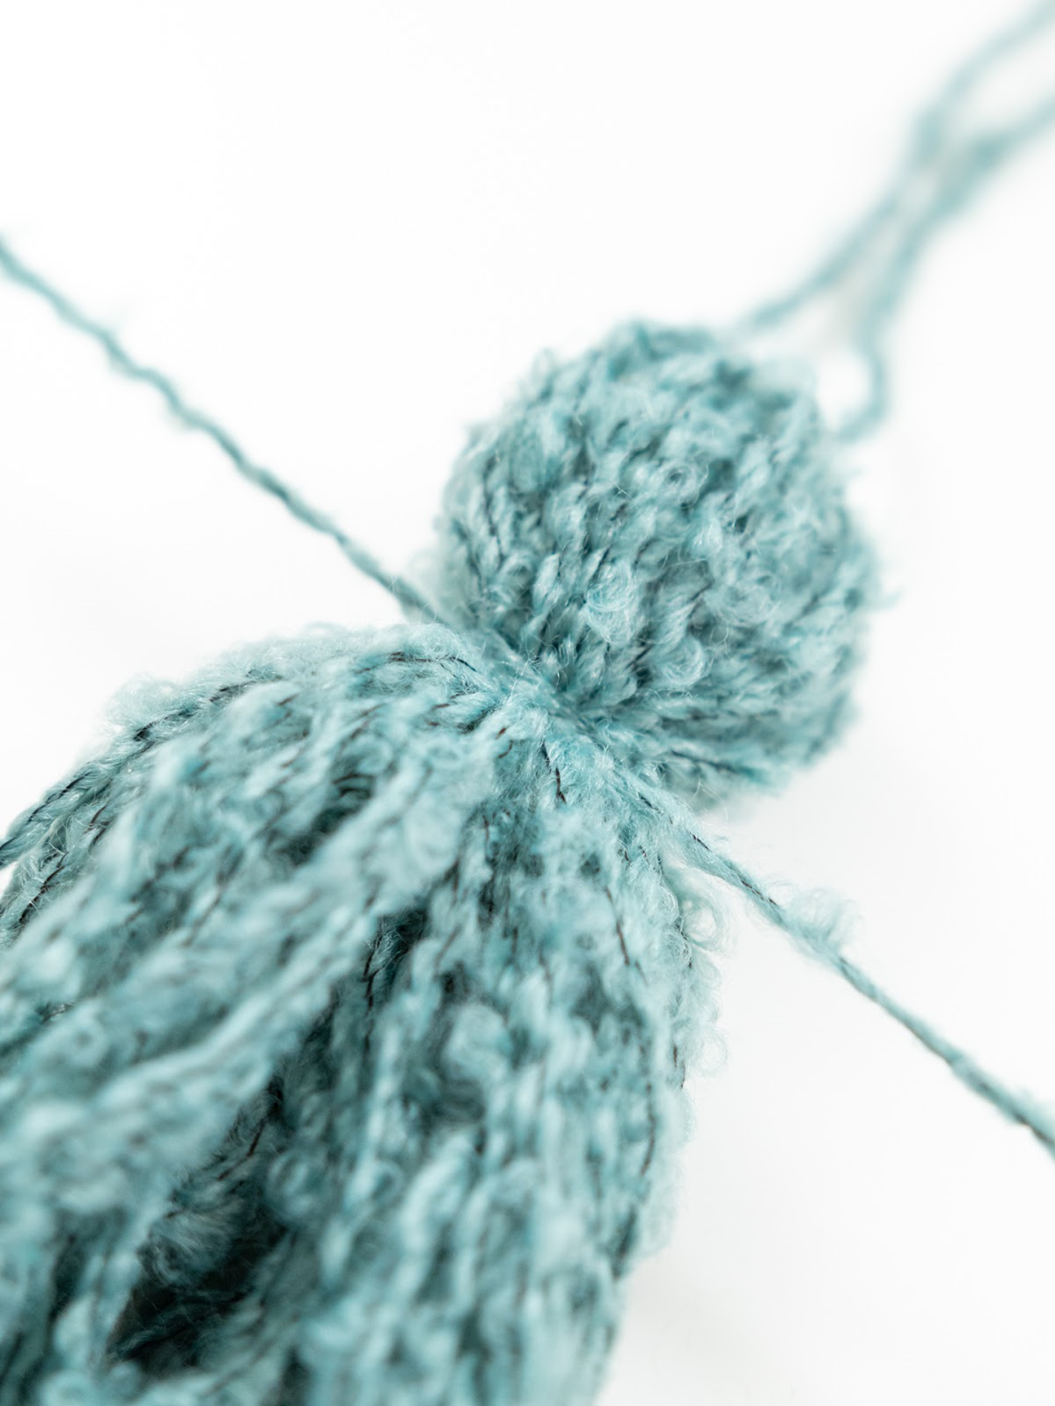 loop piece of yarn around the tassel and tie a knot